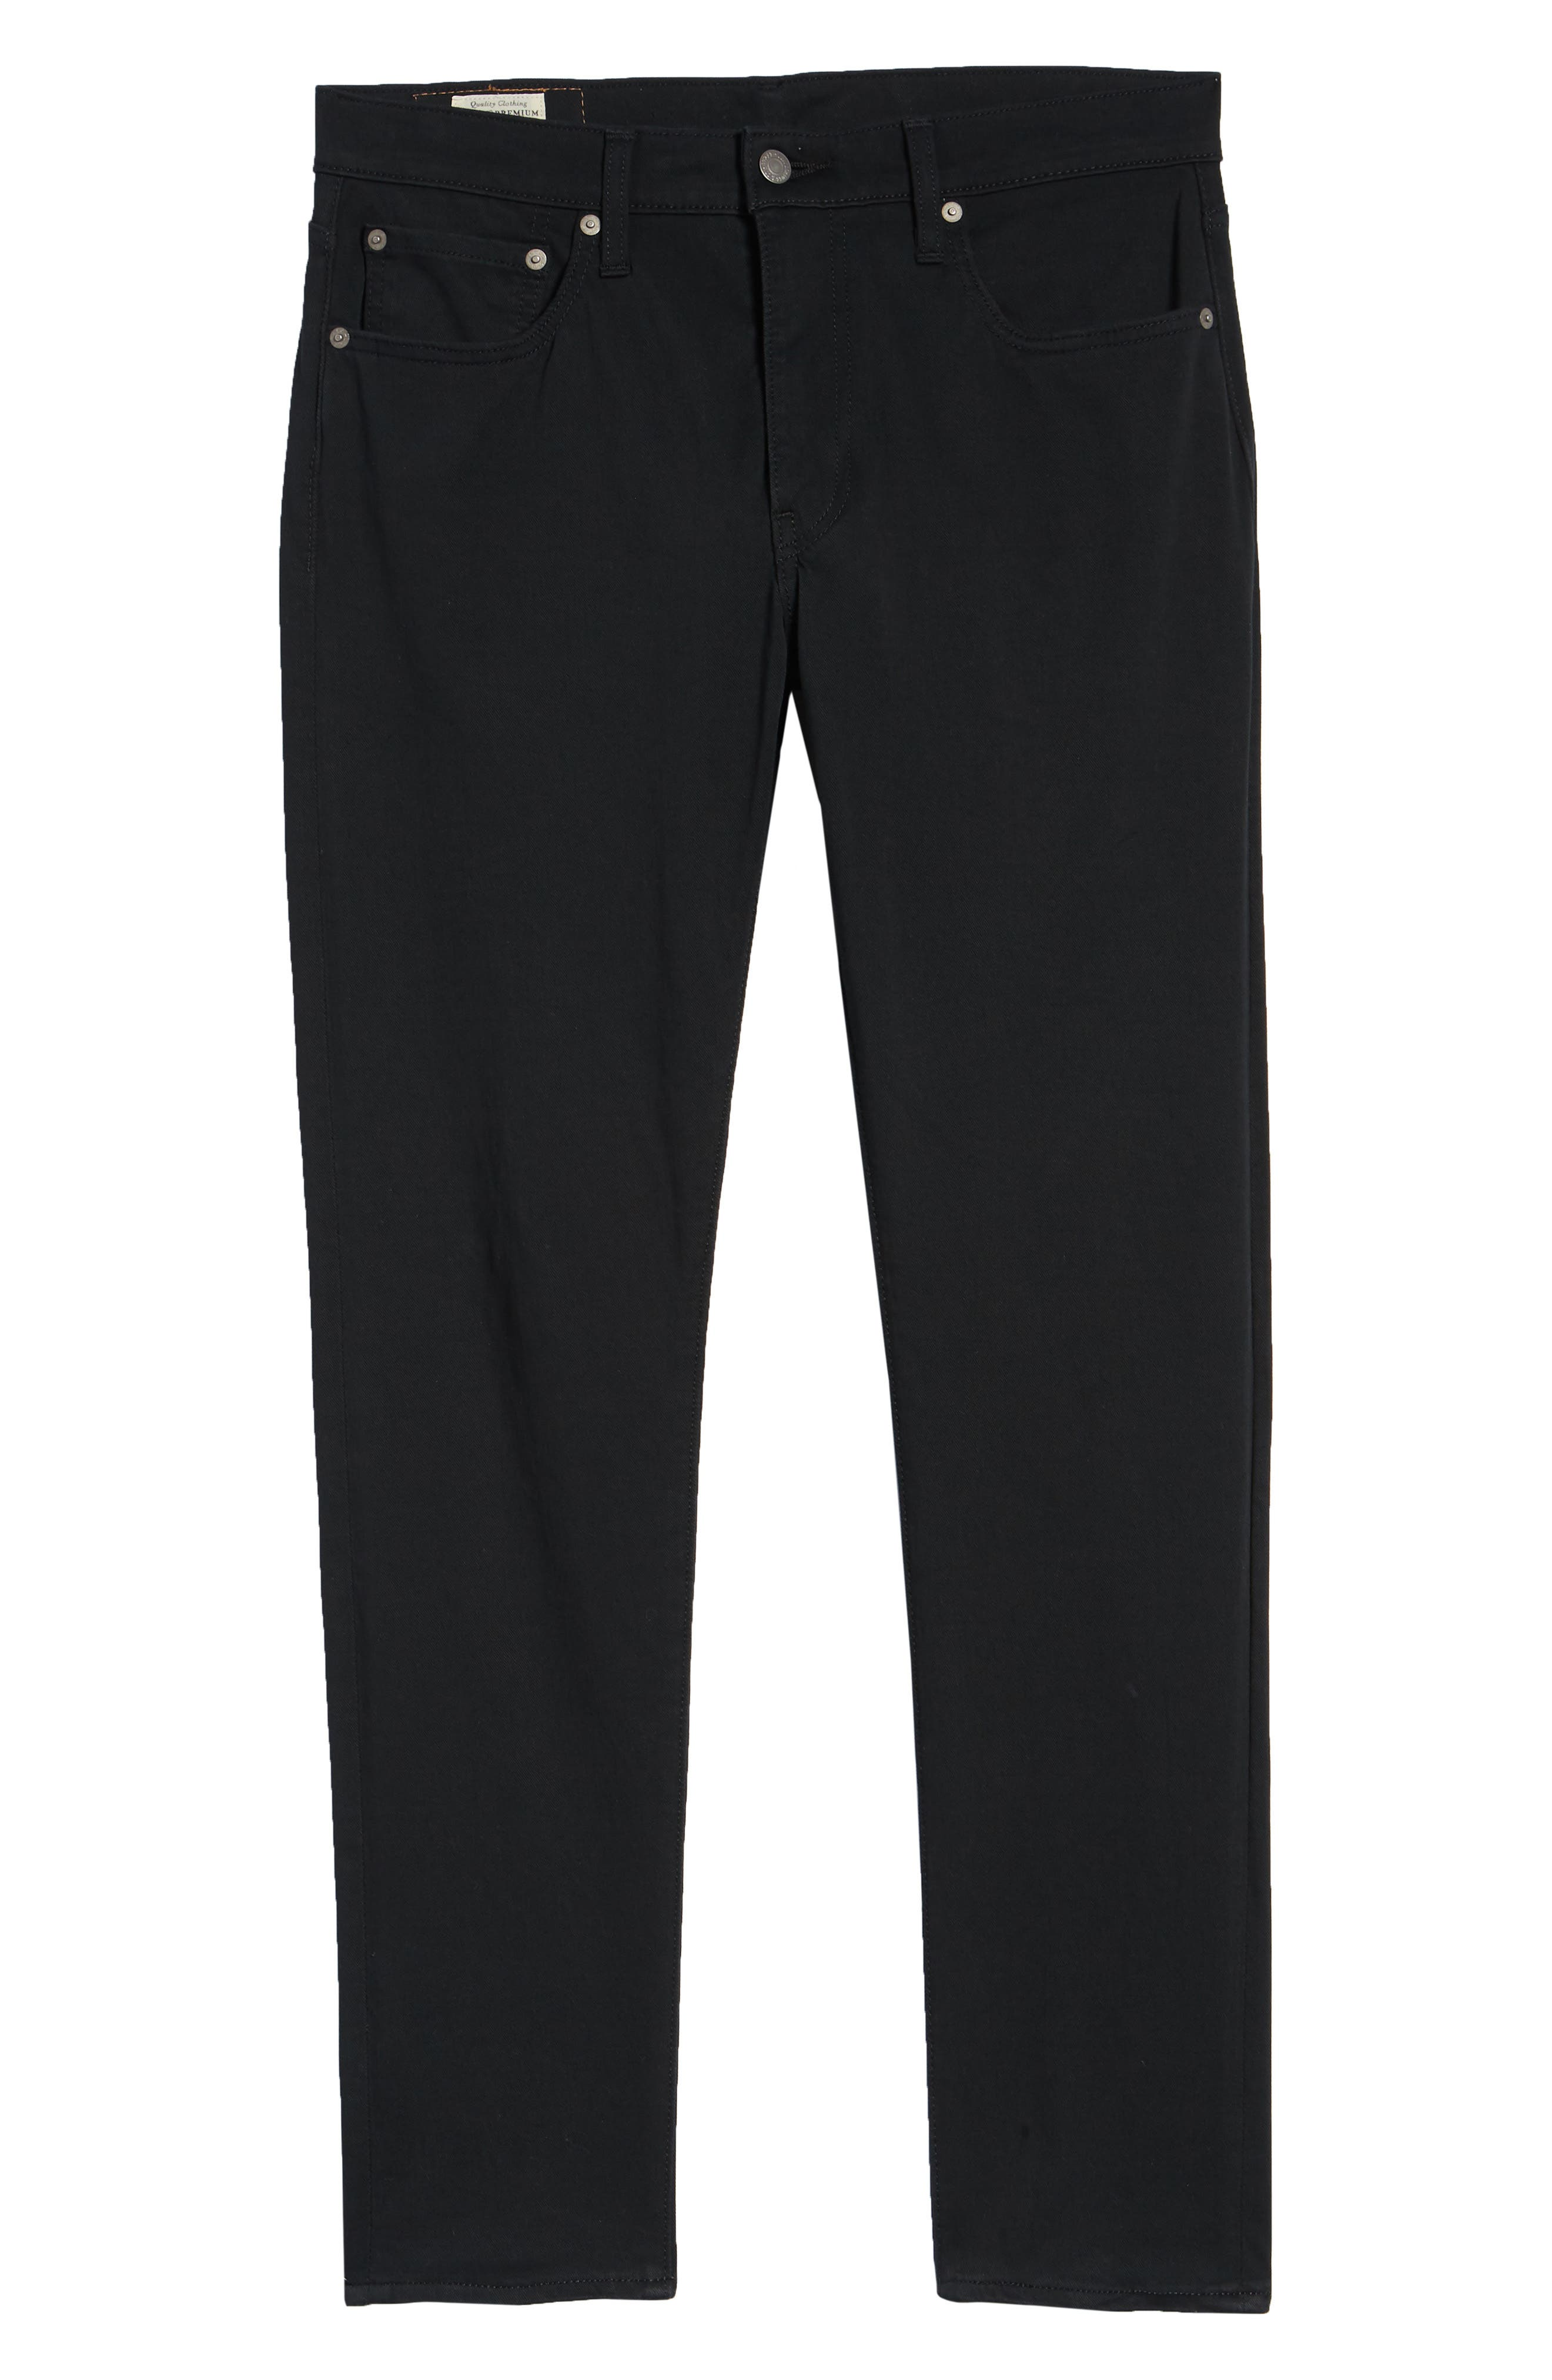 512<sup>™</sup> Slouchy Skinny Fit Twill Pants,                             Alternate thumbnail 6, color,                             BLACK WONDER KNIT TWILL